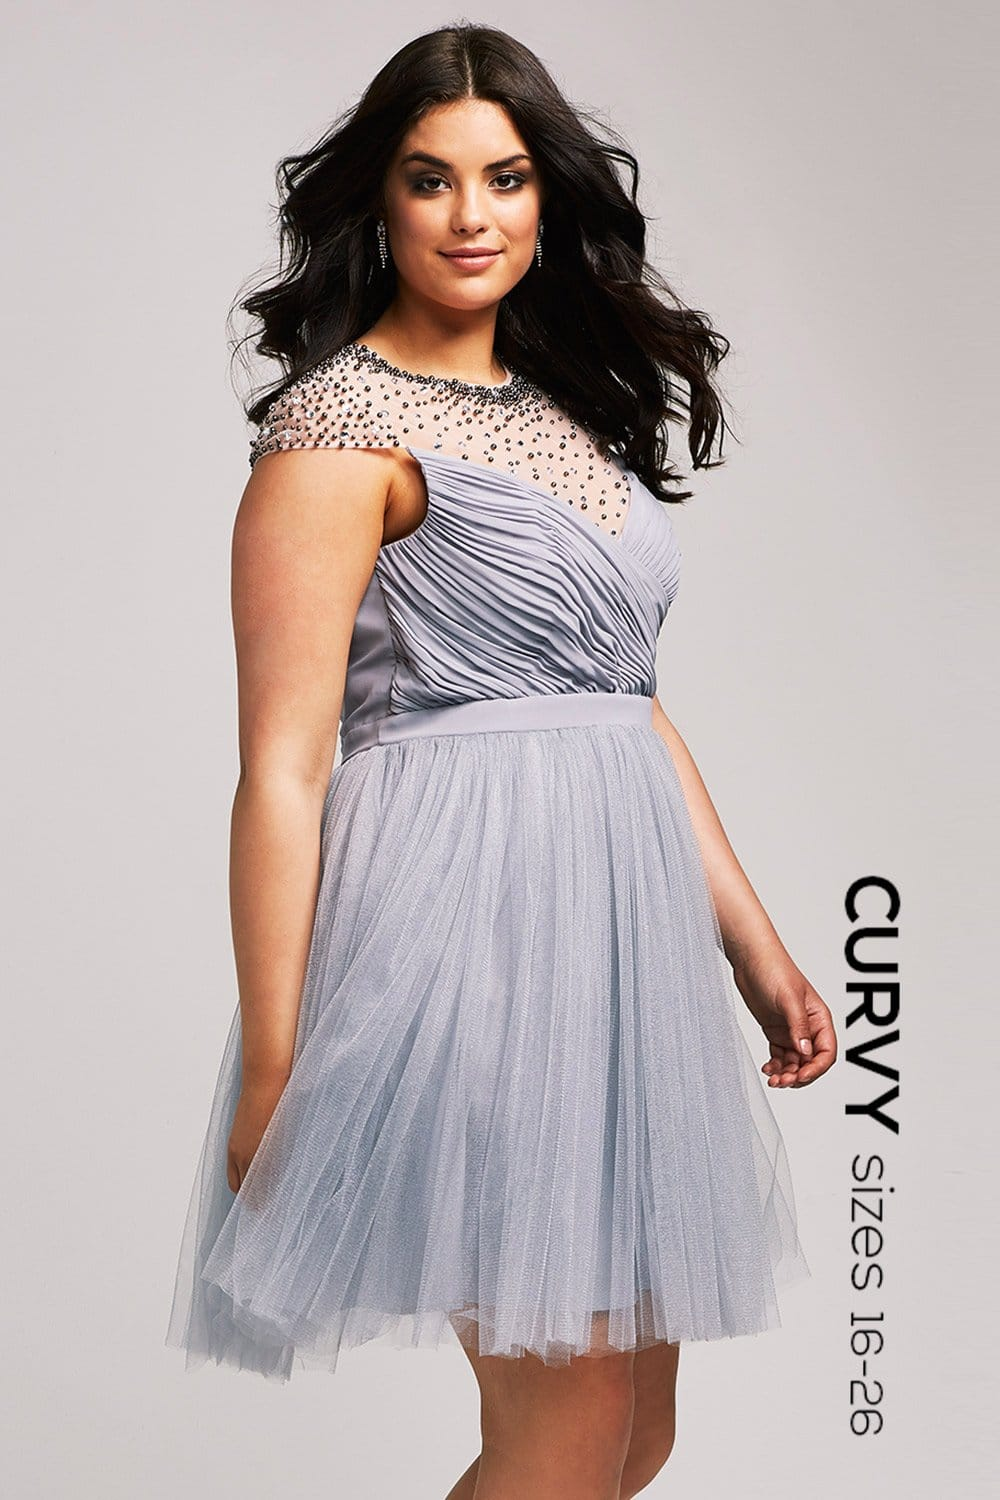 Prom dresses for tall ladies uk